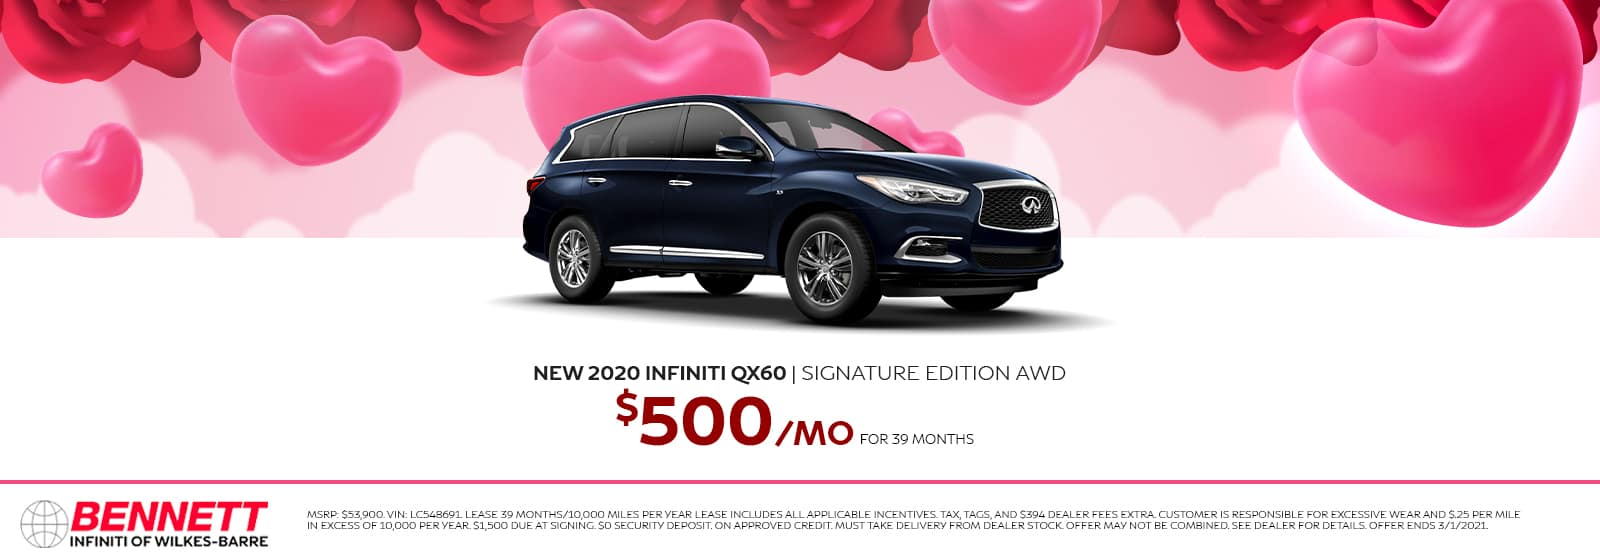 New 2020 INFINITI QX60 Signature Edition AWD - $500/mo for 39 months.